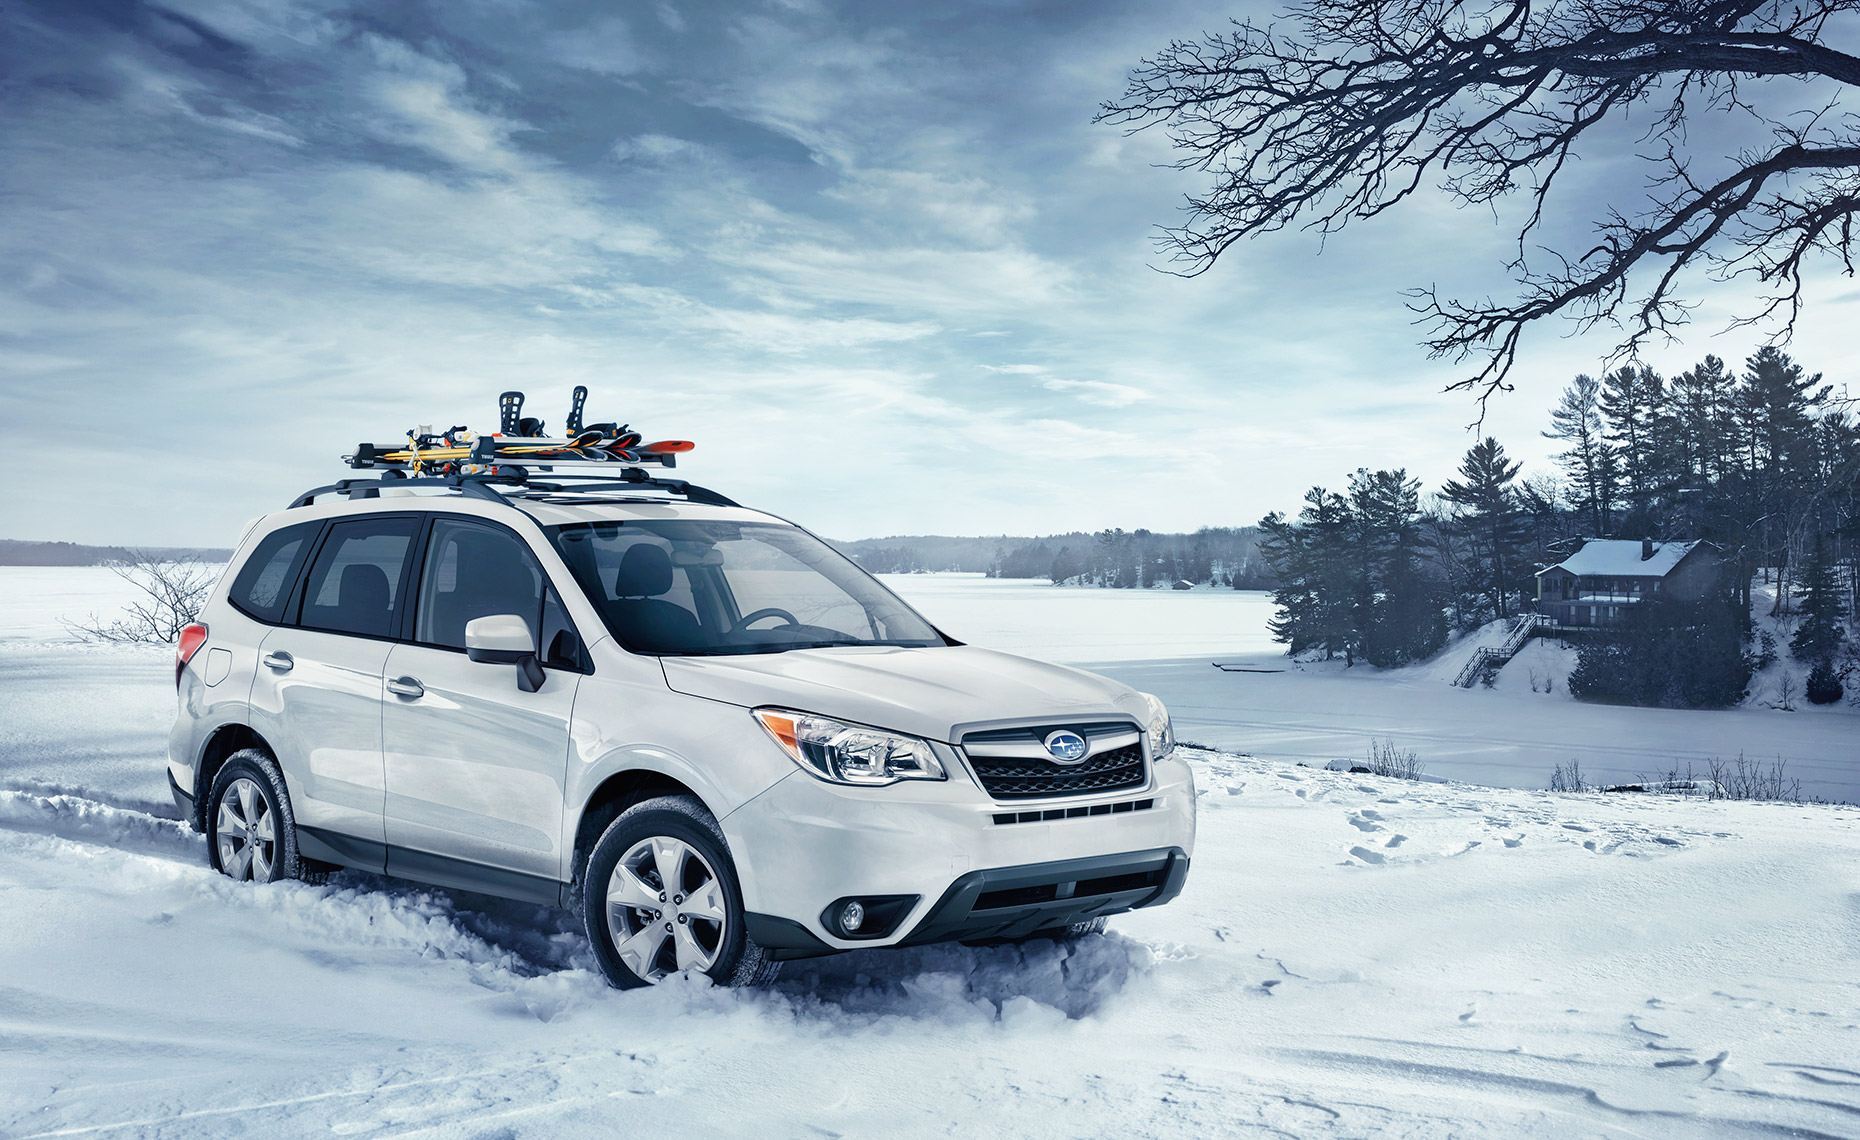 Subaru-Forester-Winter-Lake